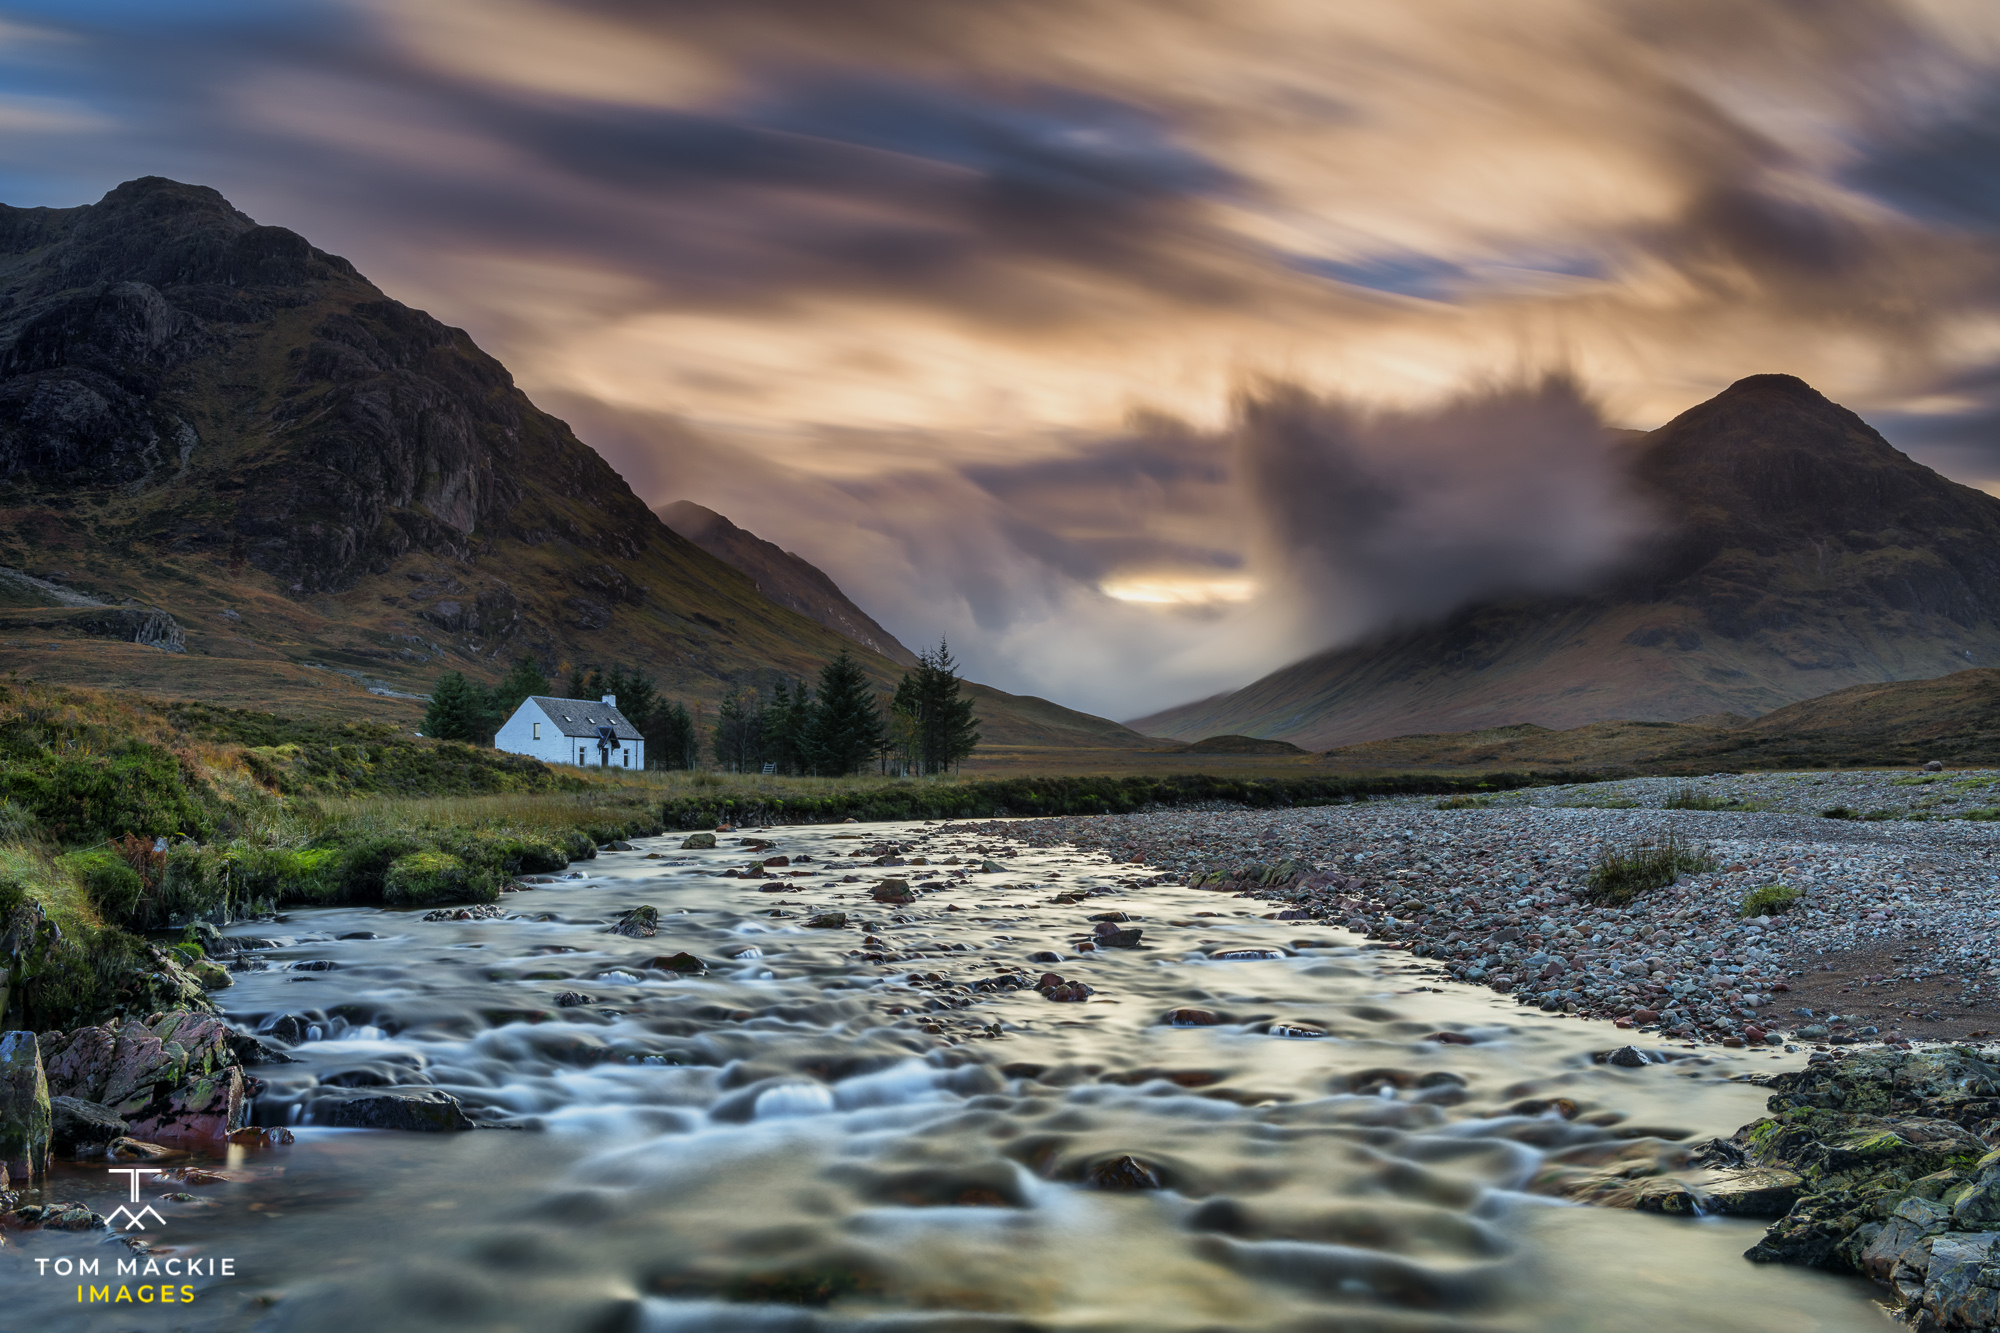 Lone White Cottage by River Coupall, Glen Coe, Highlands, Scotland